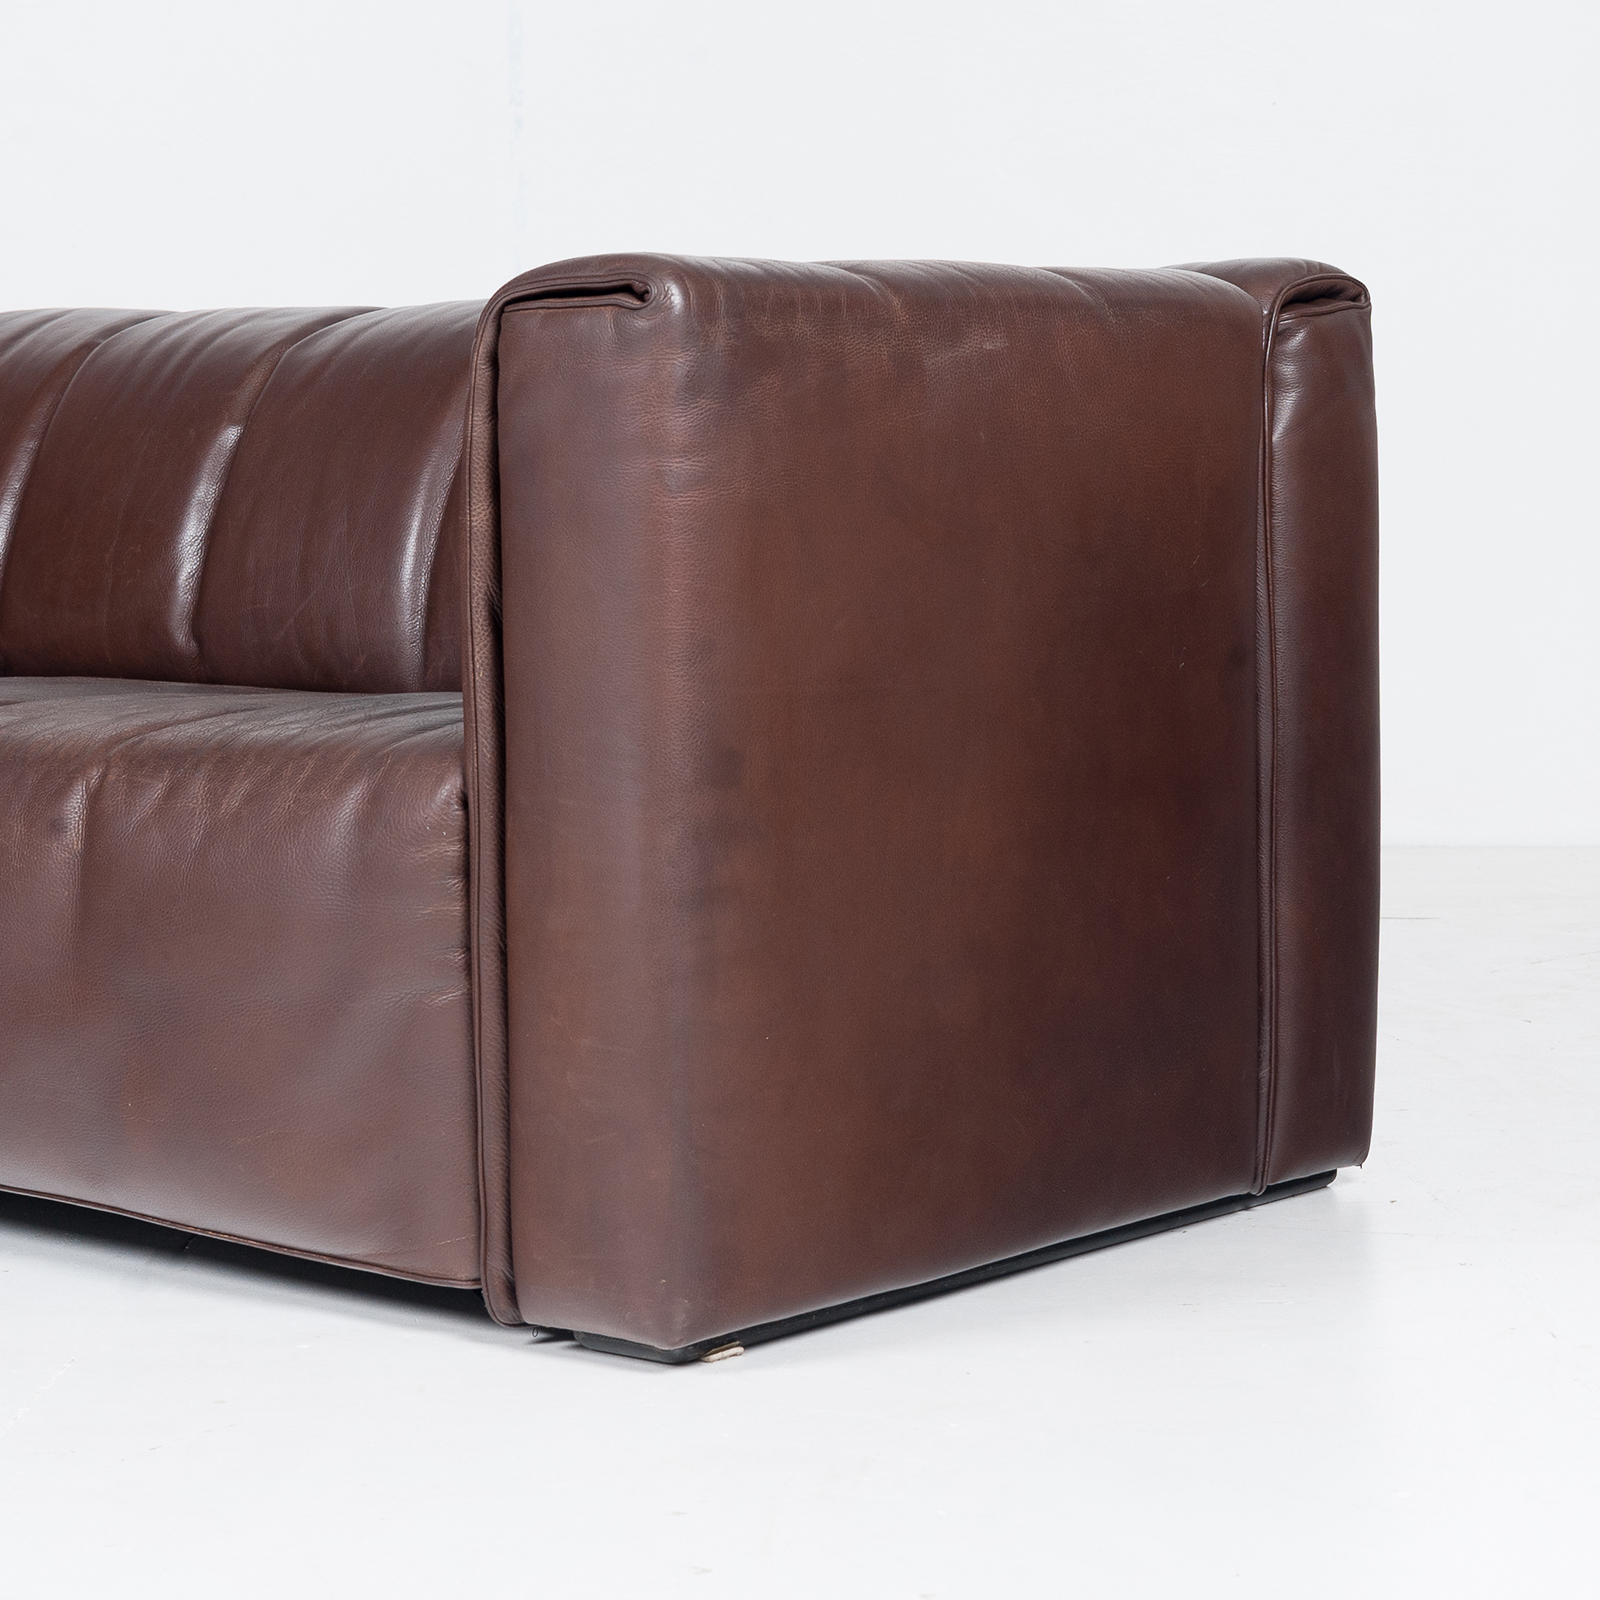 2.5 Seat Leather Sofa By Wittmann, Austria39